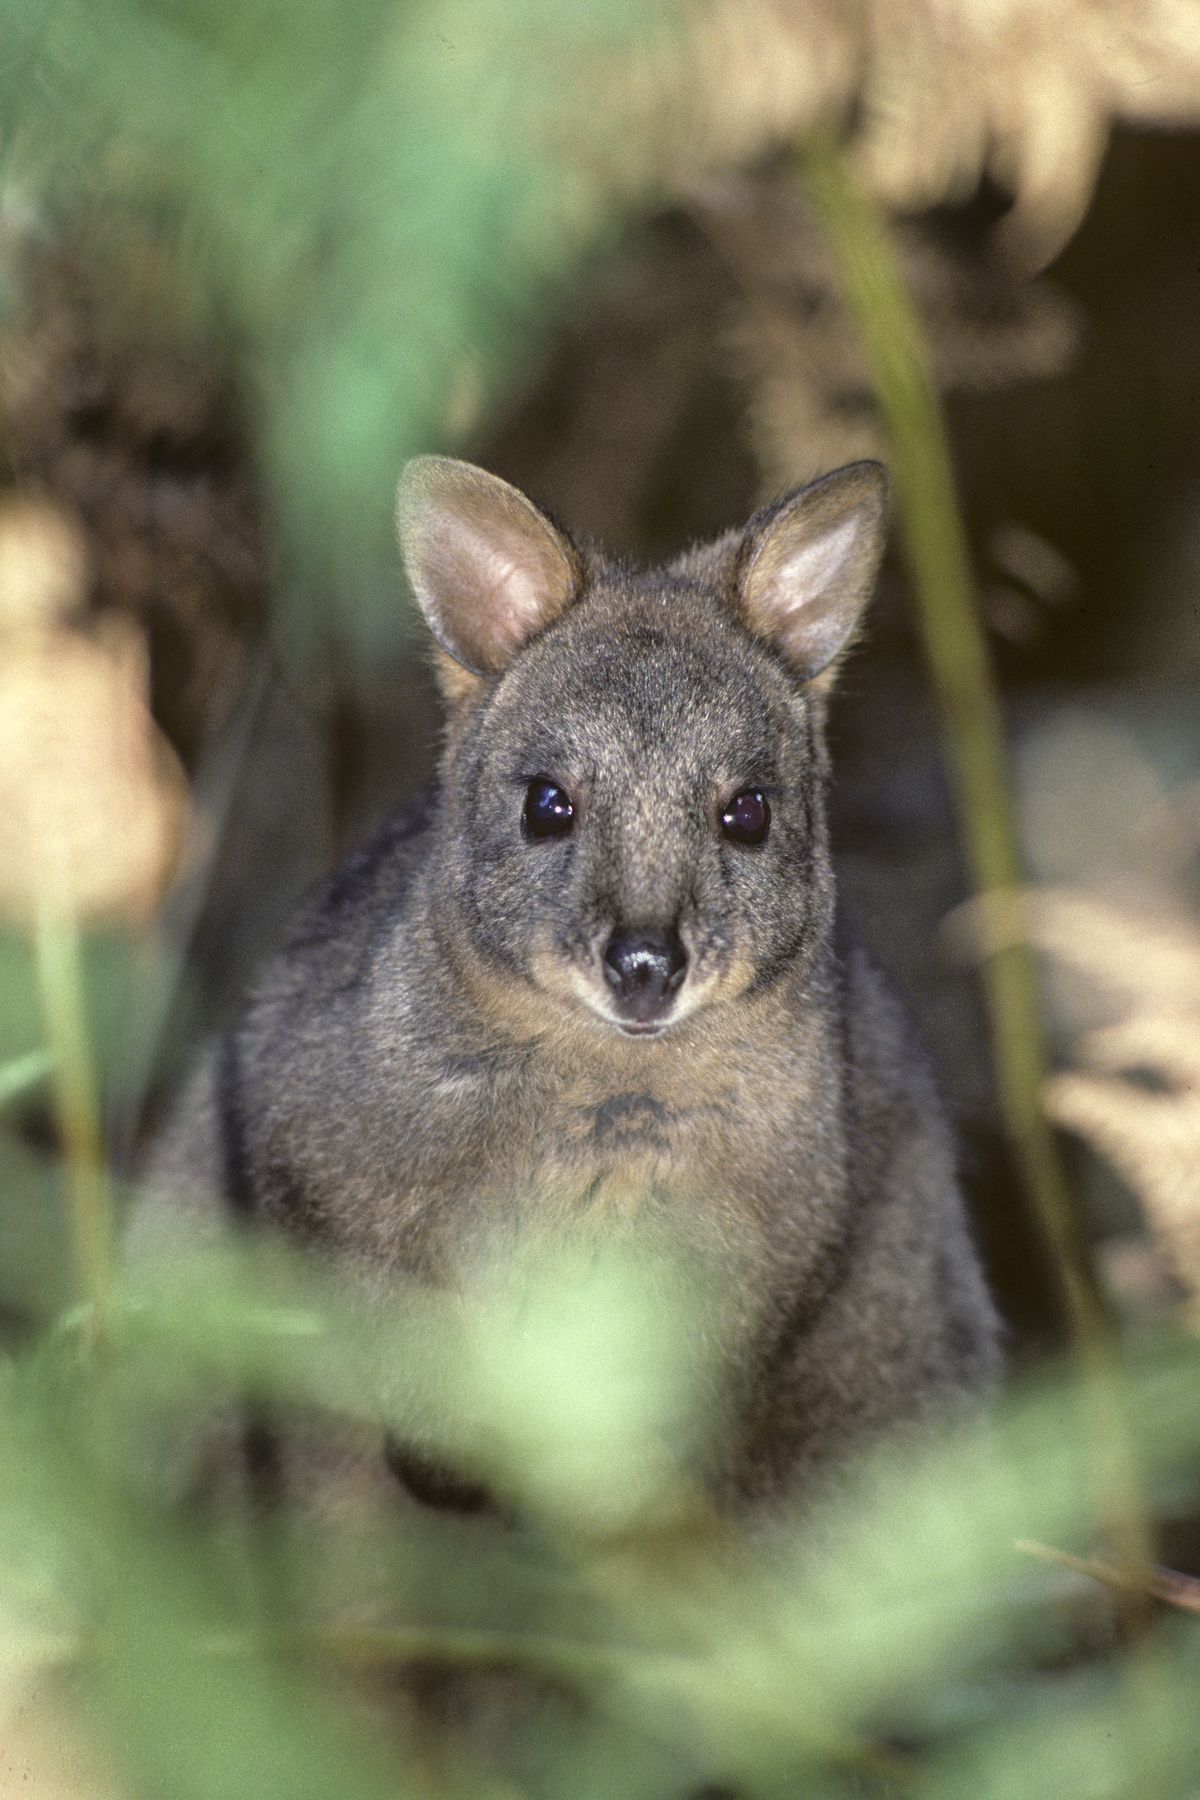 A pademelon gazing straight toward the camera, ears forward, through some foliage.